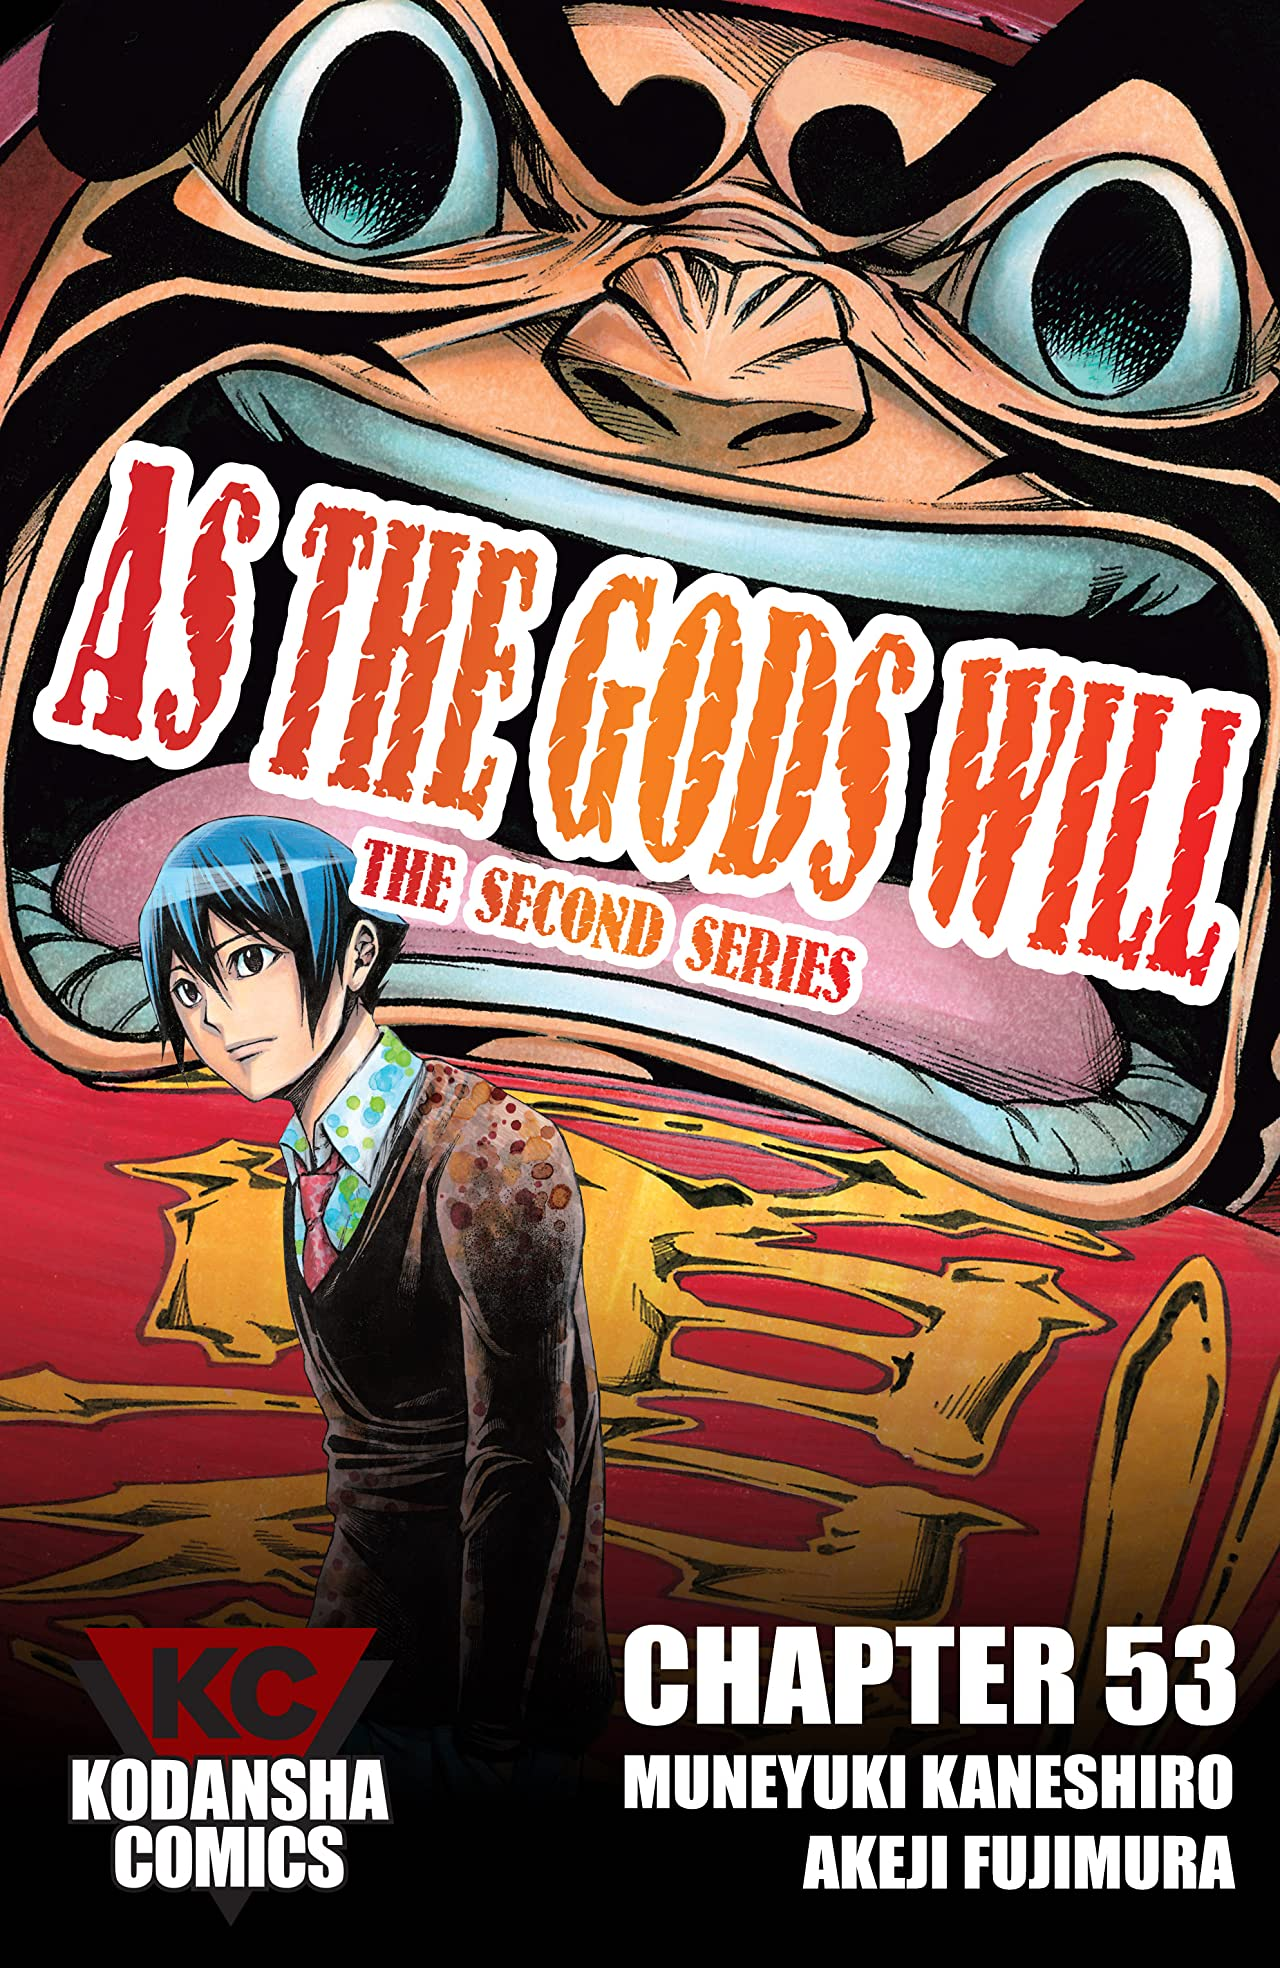 As The Gods Will: The Second Series #53